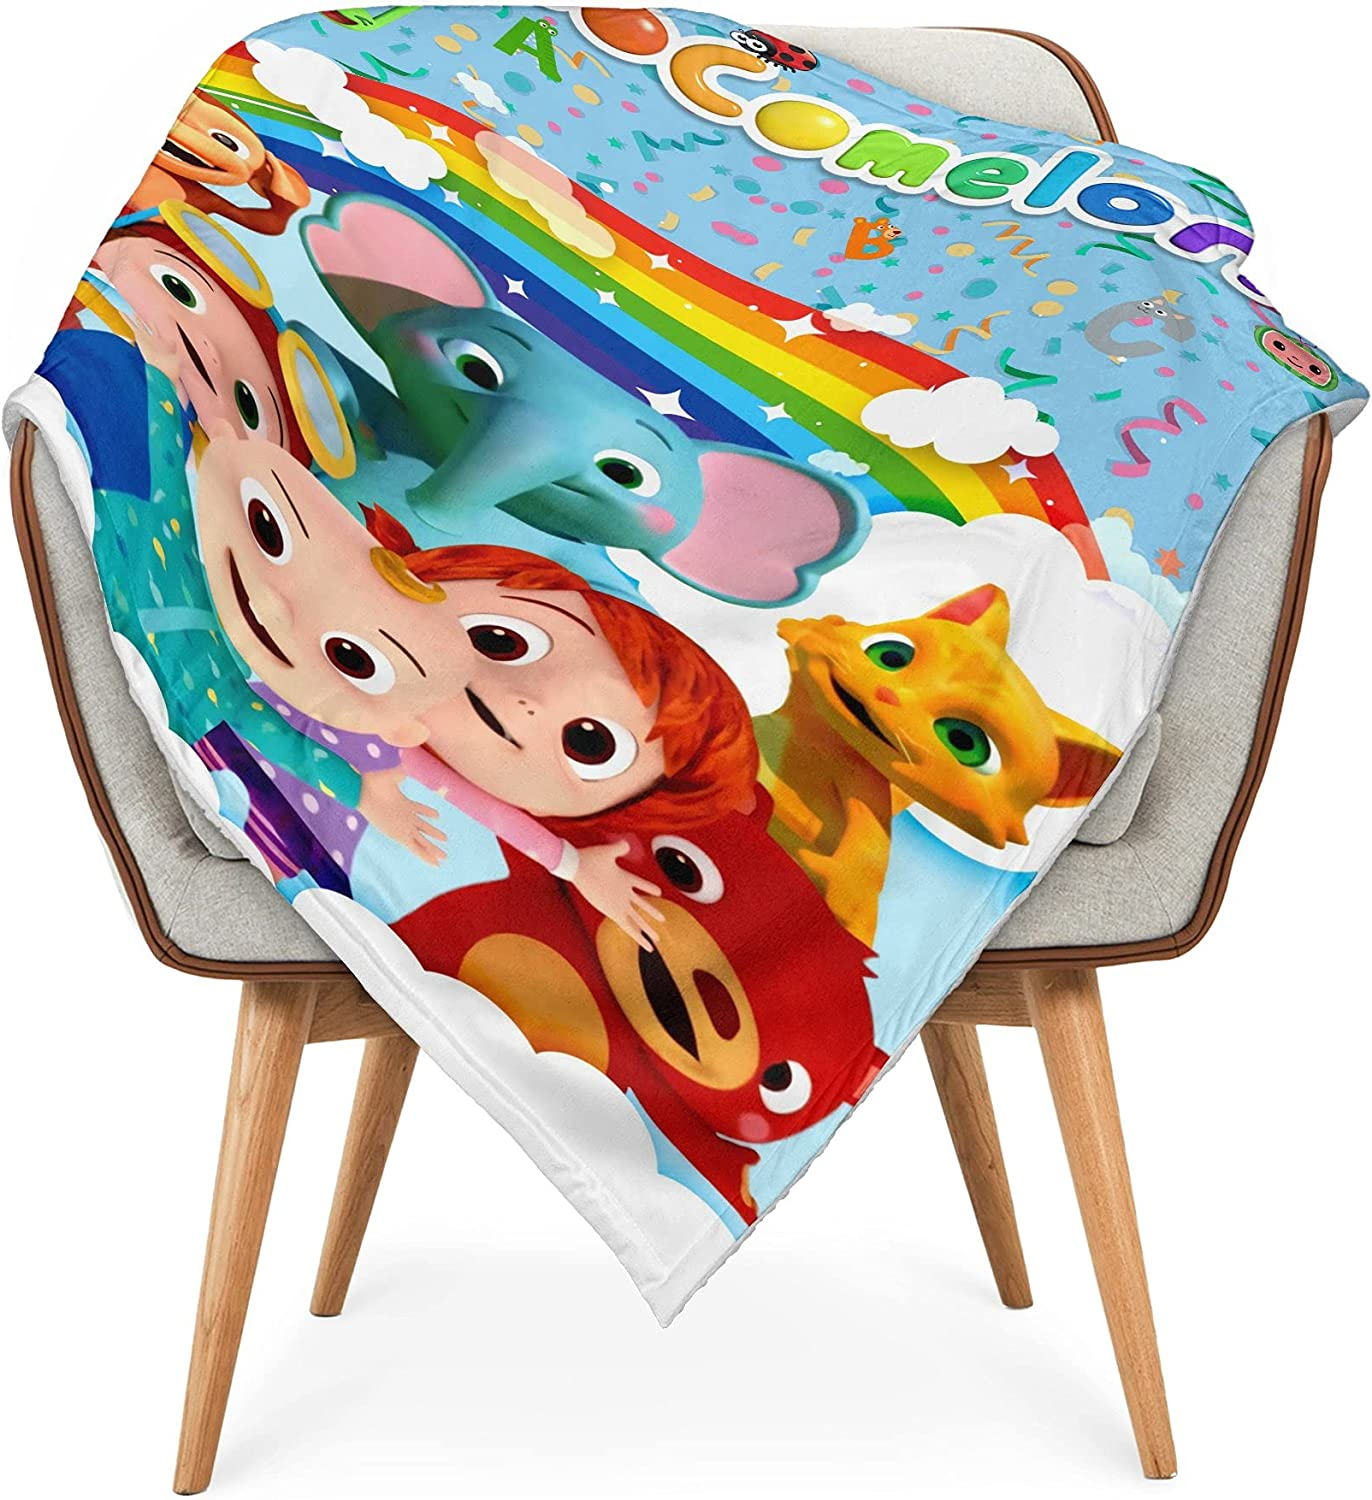 Baby Blanket Super Soft Flannel Throw Air Conditioner Receiving Blankets for Toddler Kids for Bedroom Couch 30x40 Inch Color 3